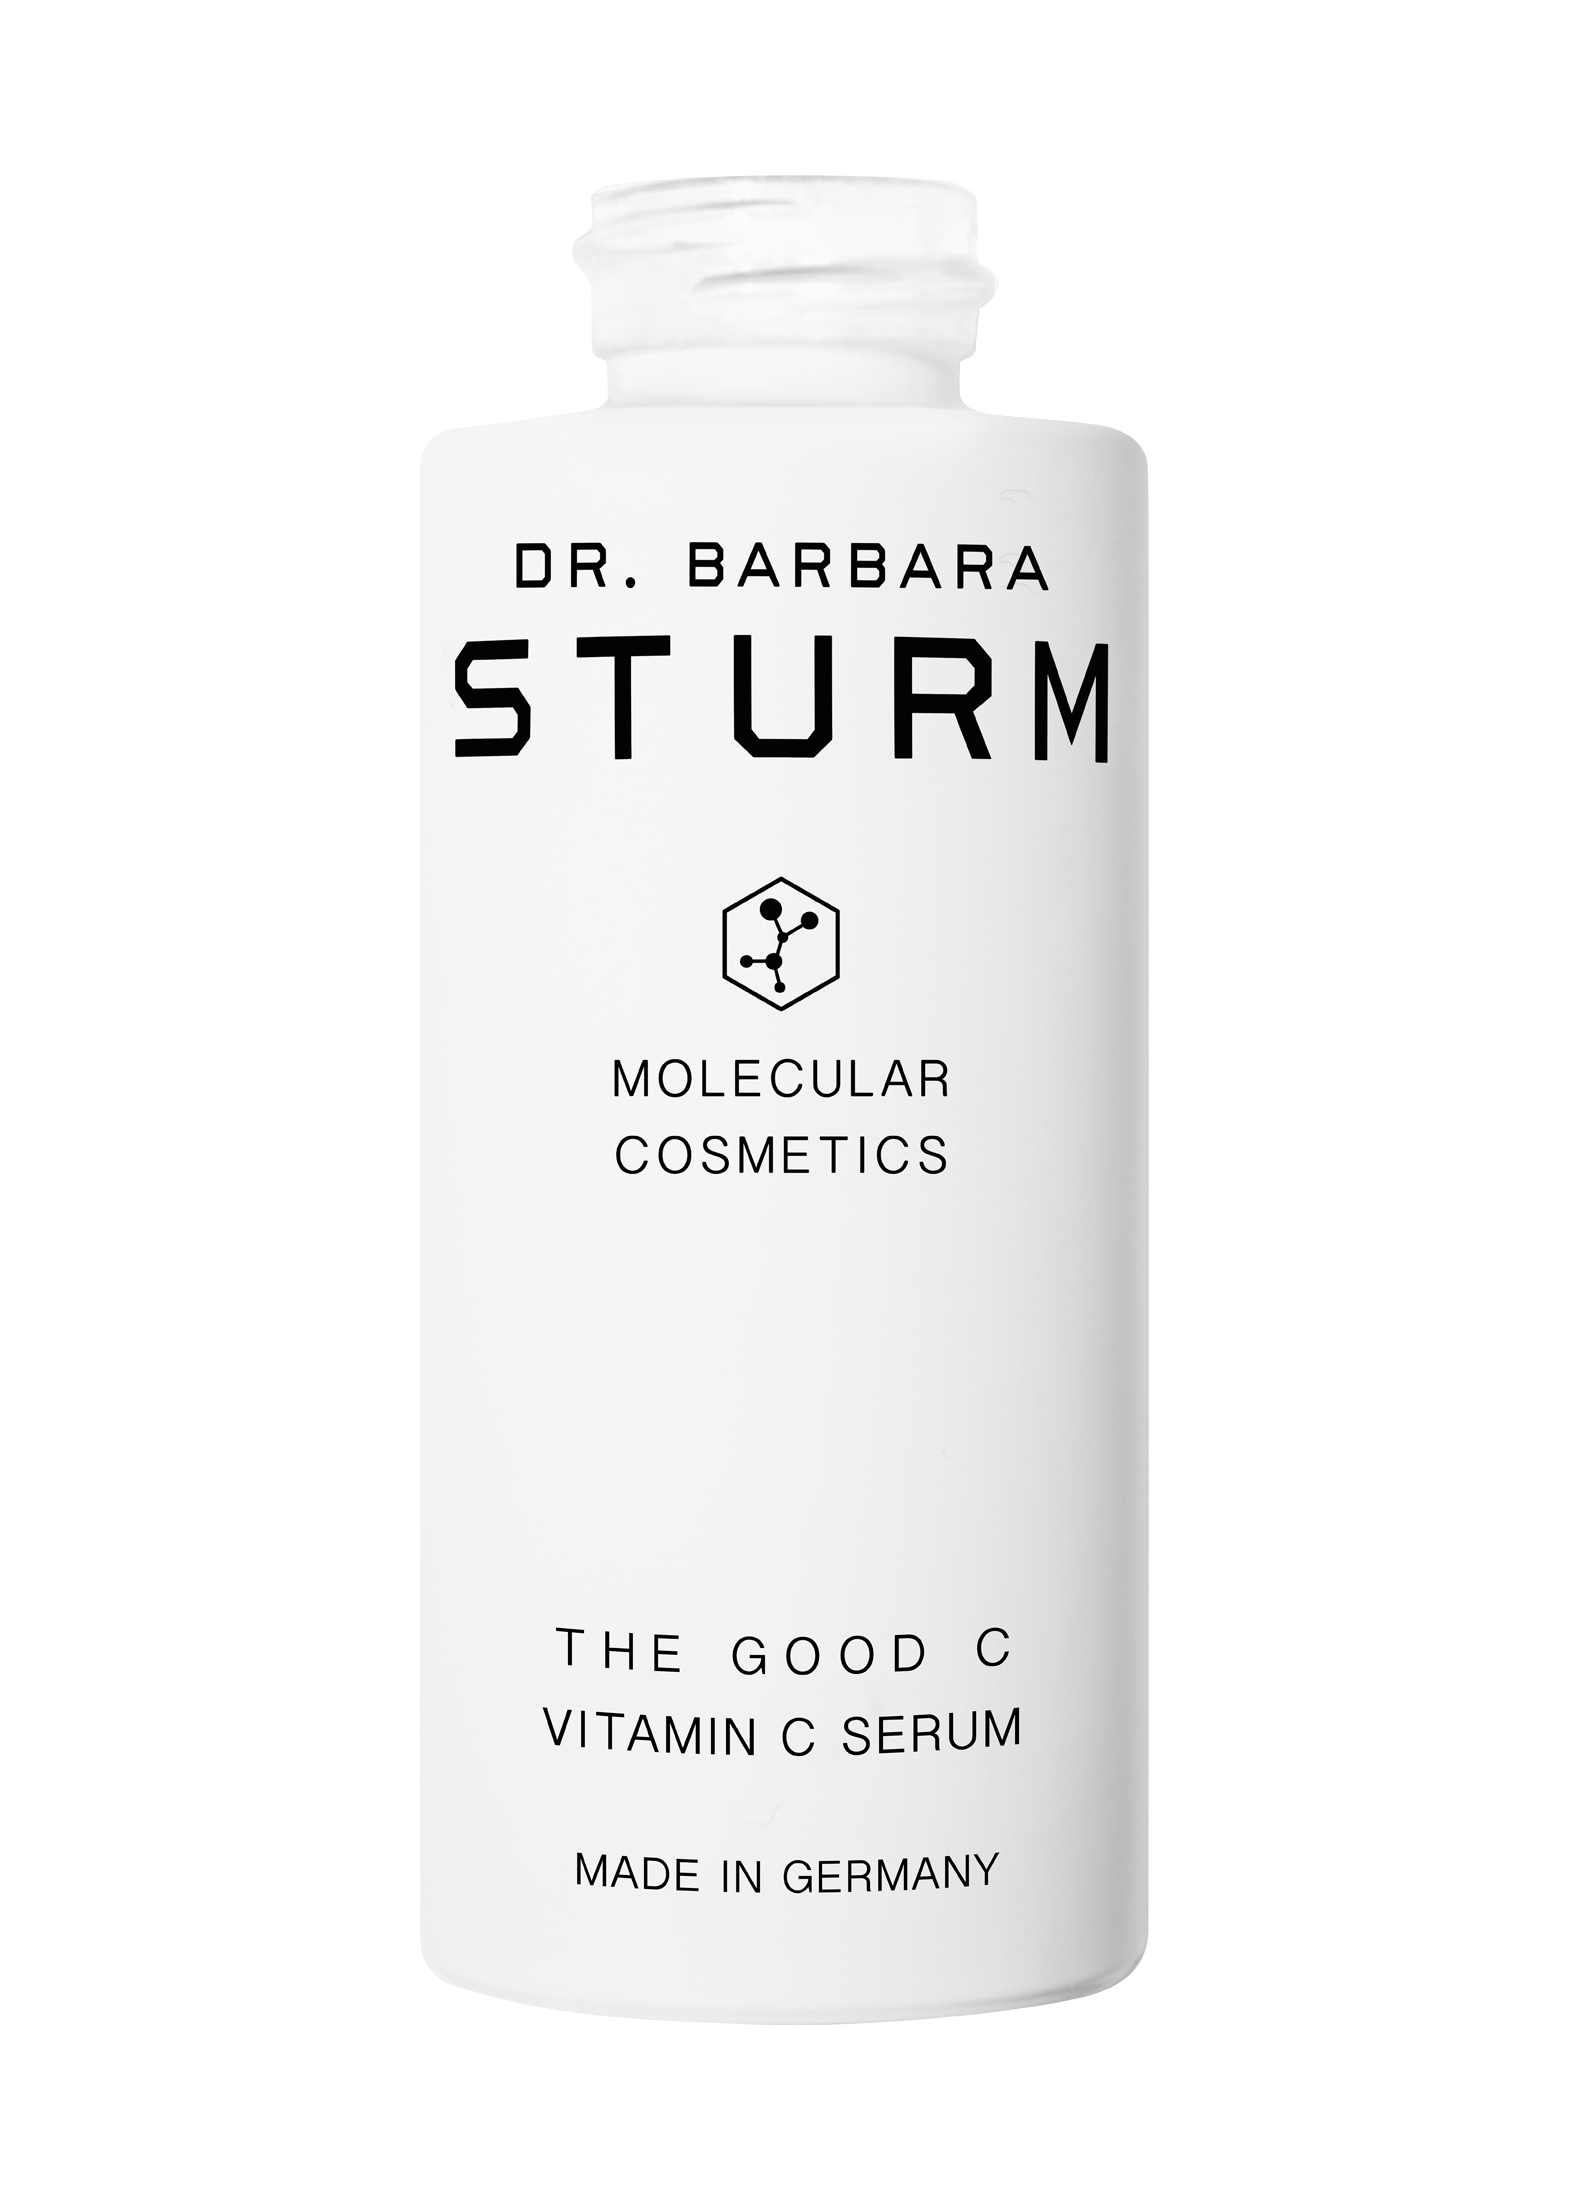 THE GOOD C VITAMIN C SERUM image number 2